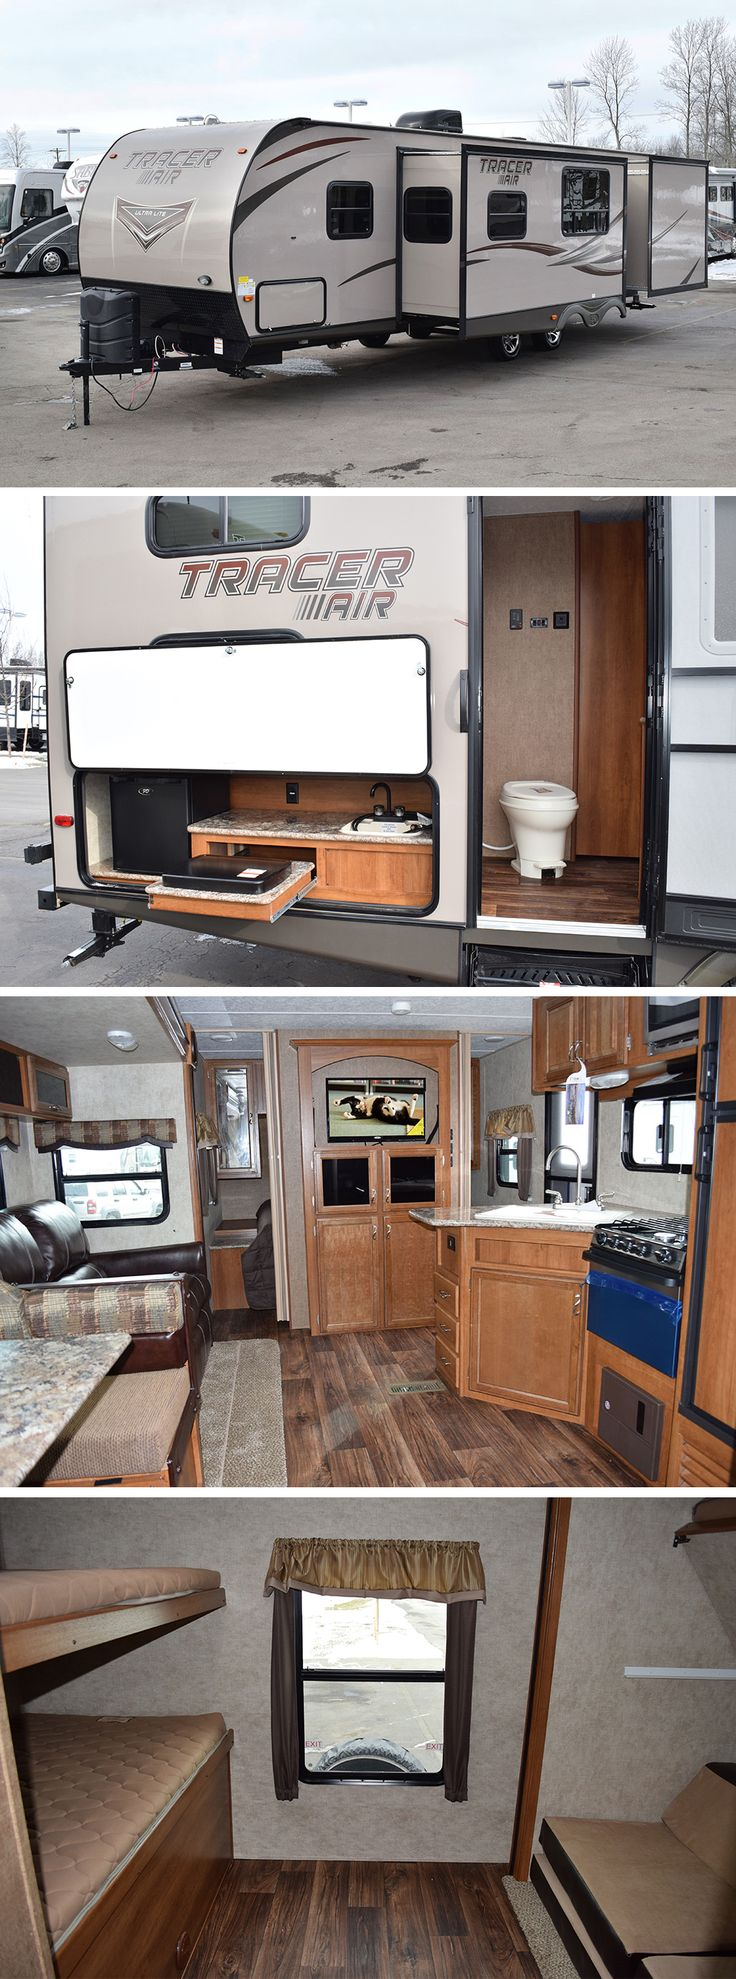 2015 prime time tracer travel trailer need something you can tow with mini van or today s crossover suvs the tracer air has you covered